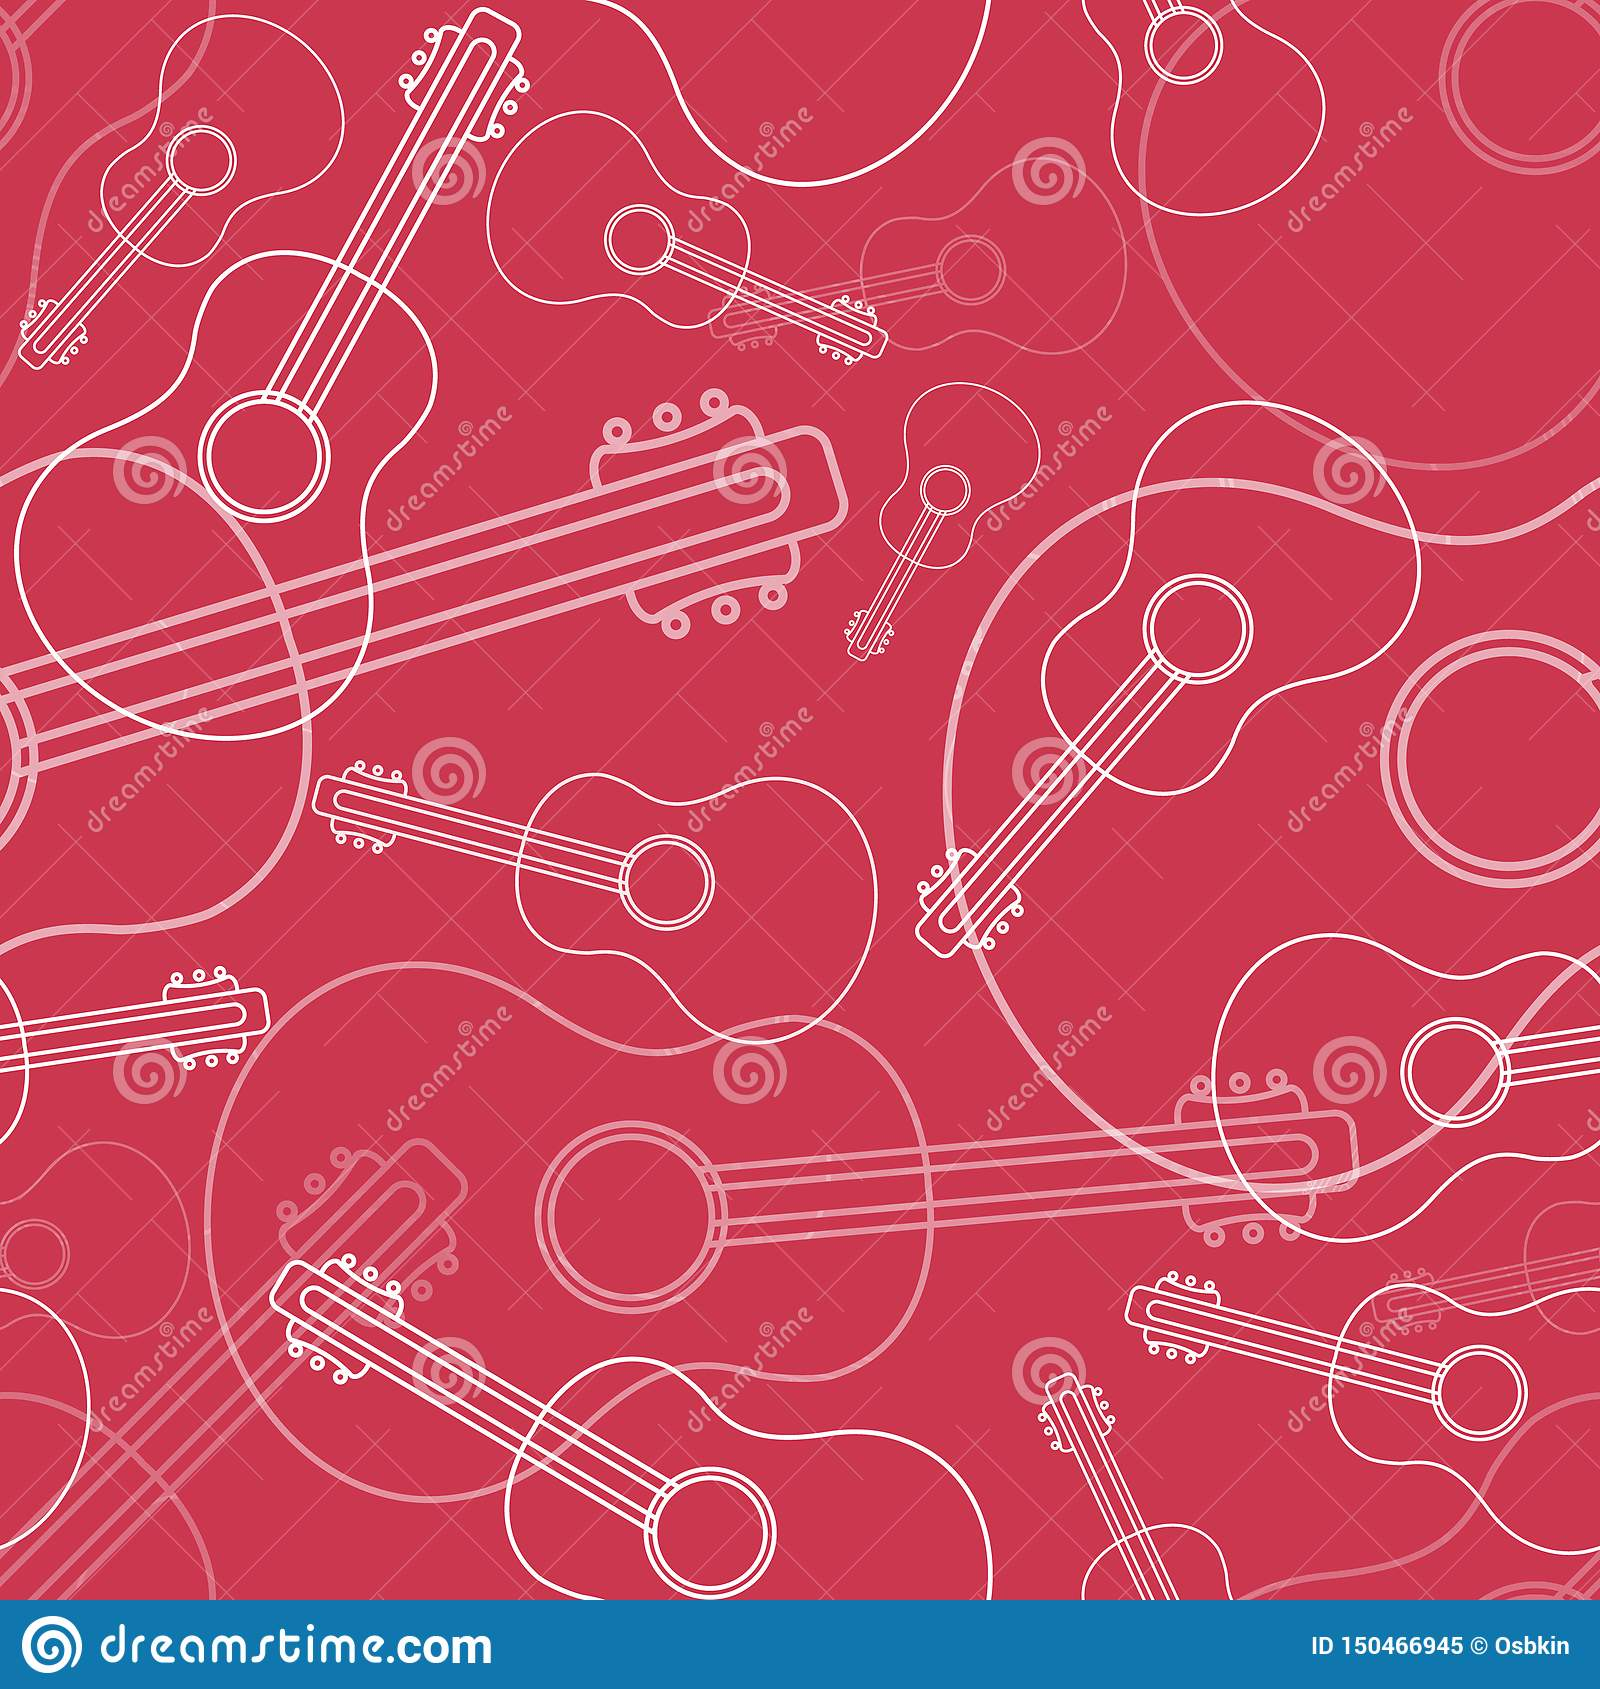 Guitar seamless pattern in line style